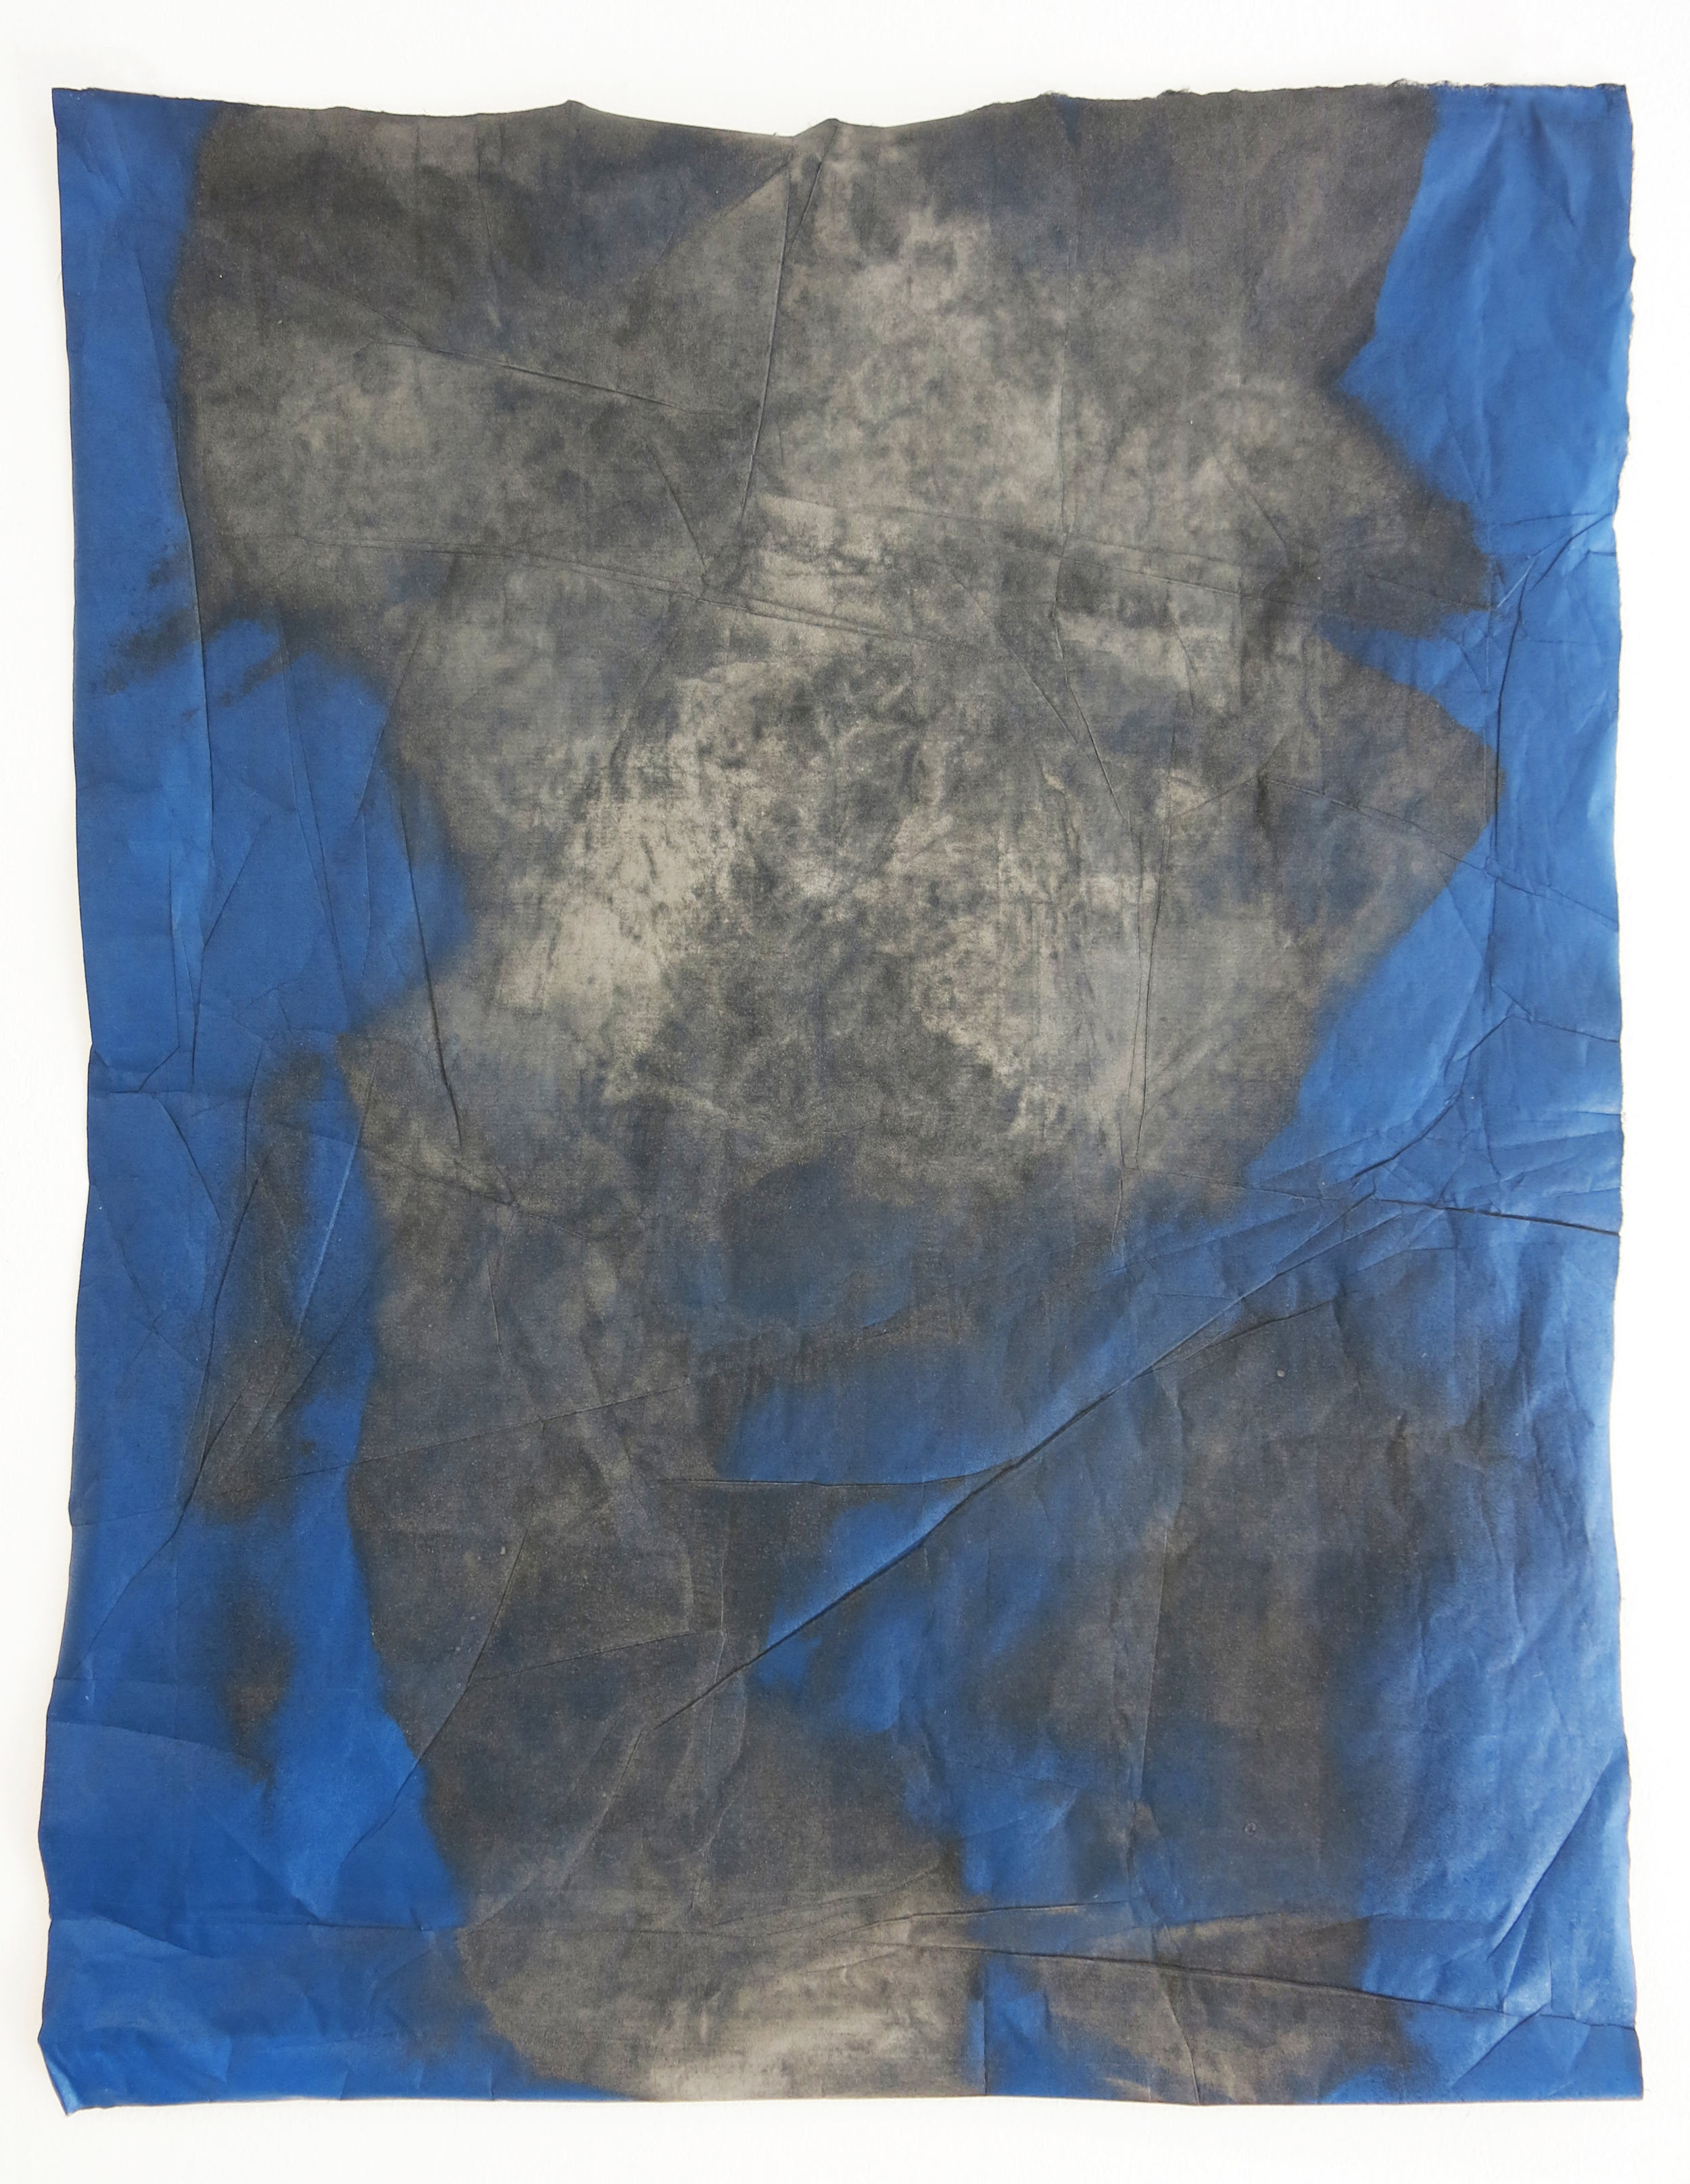 Alva Mooses. Fistful of Dirt, Monoprint and pulverized igneous stones, 2014.